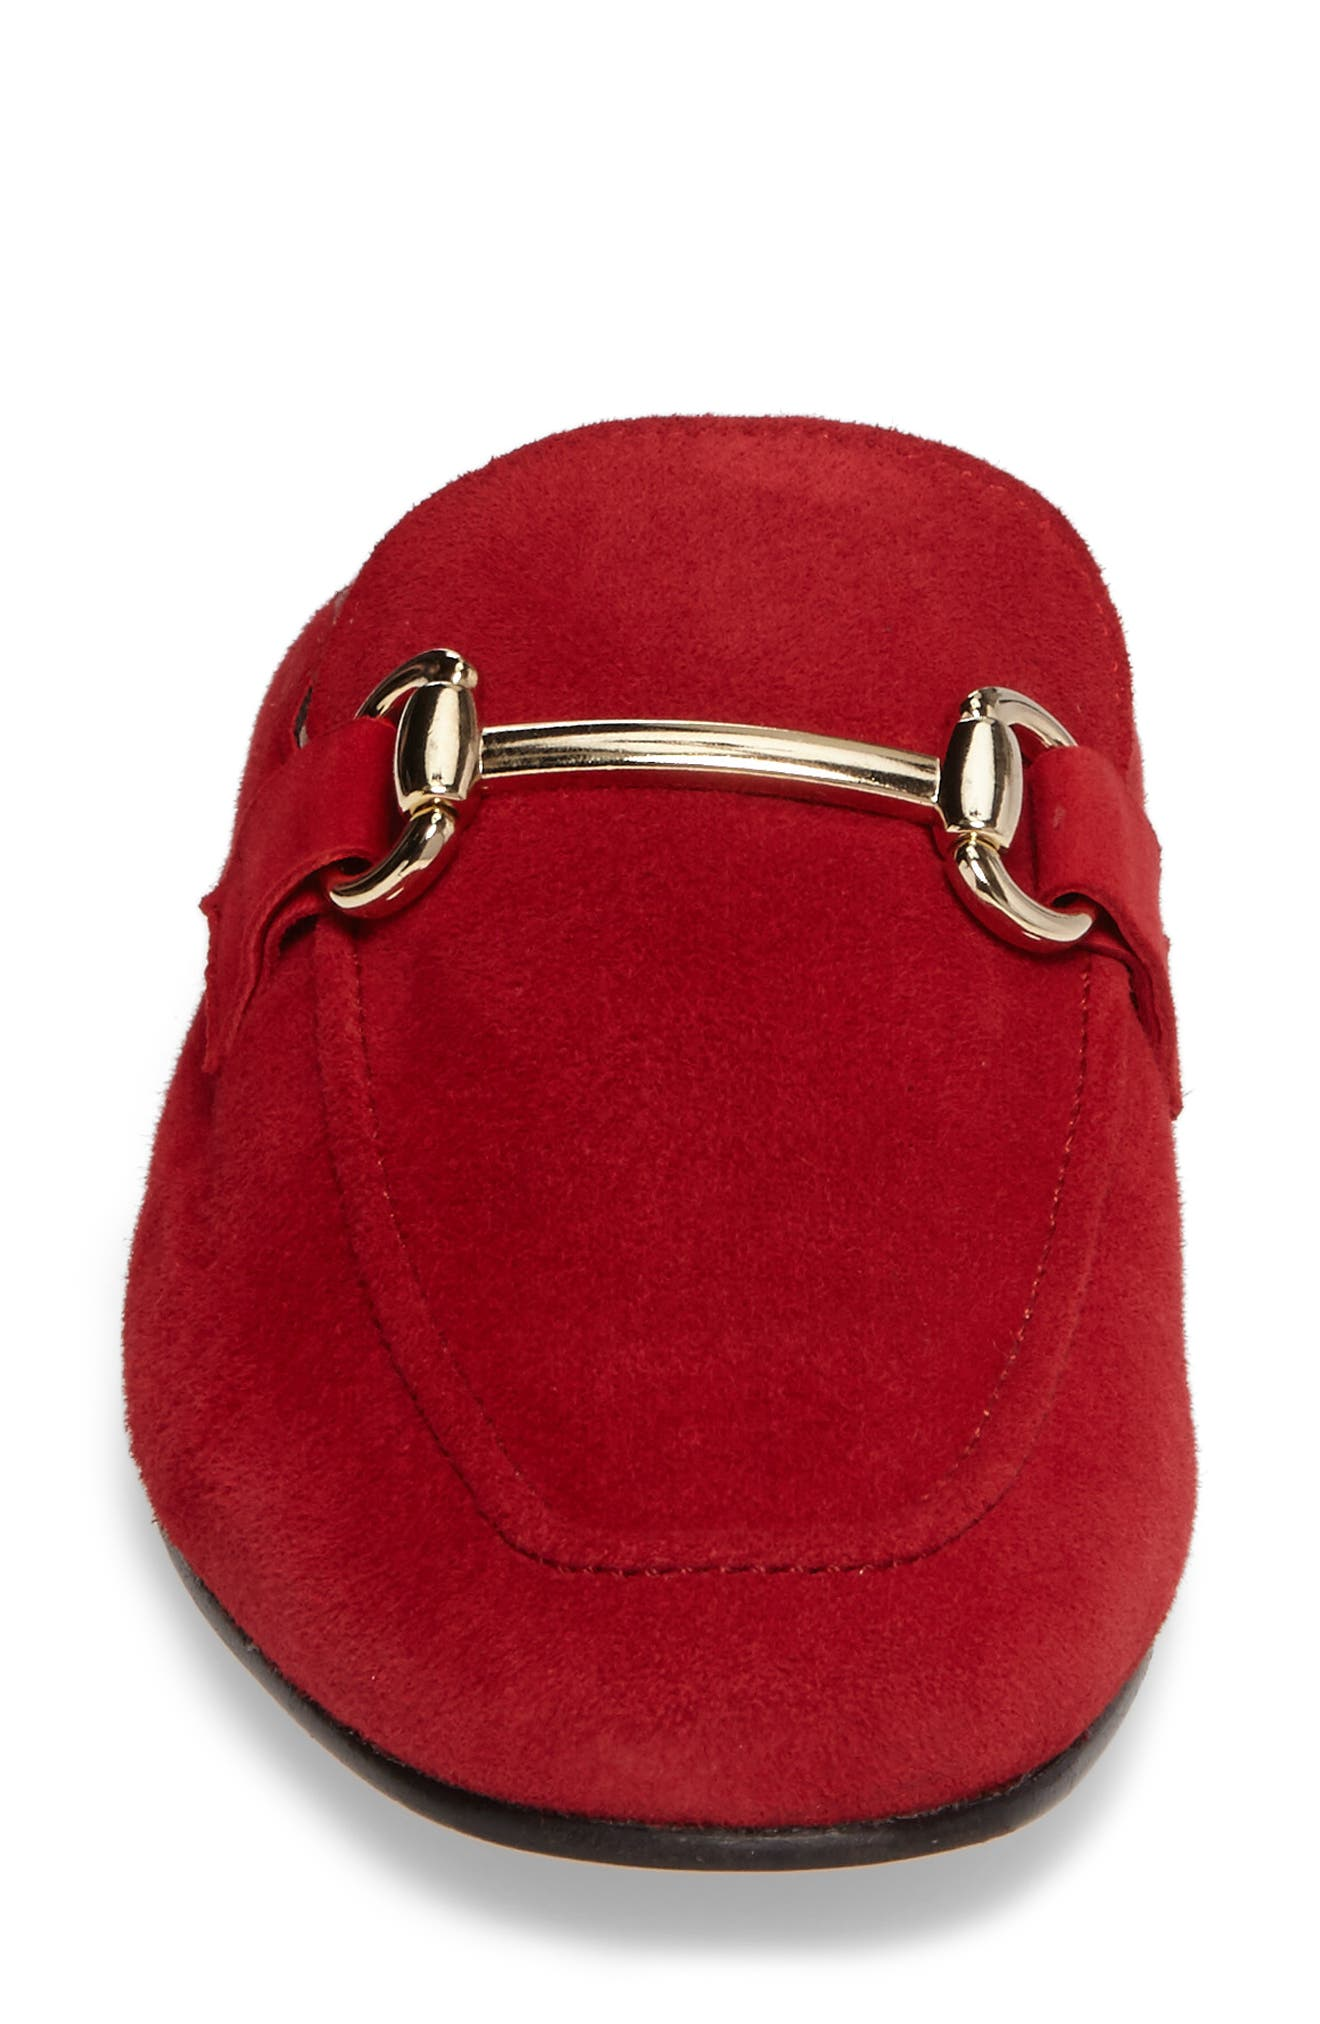 Sorrento Loafer Mule,                             Alternate thumbnail 4, color,                             RED SUEDE